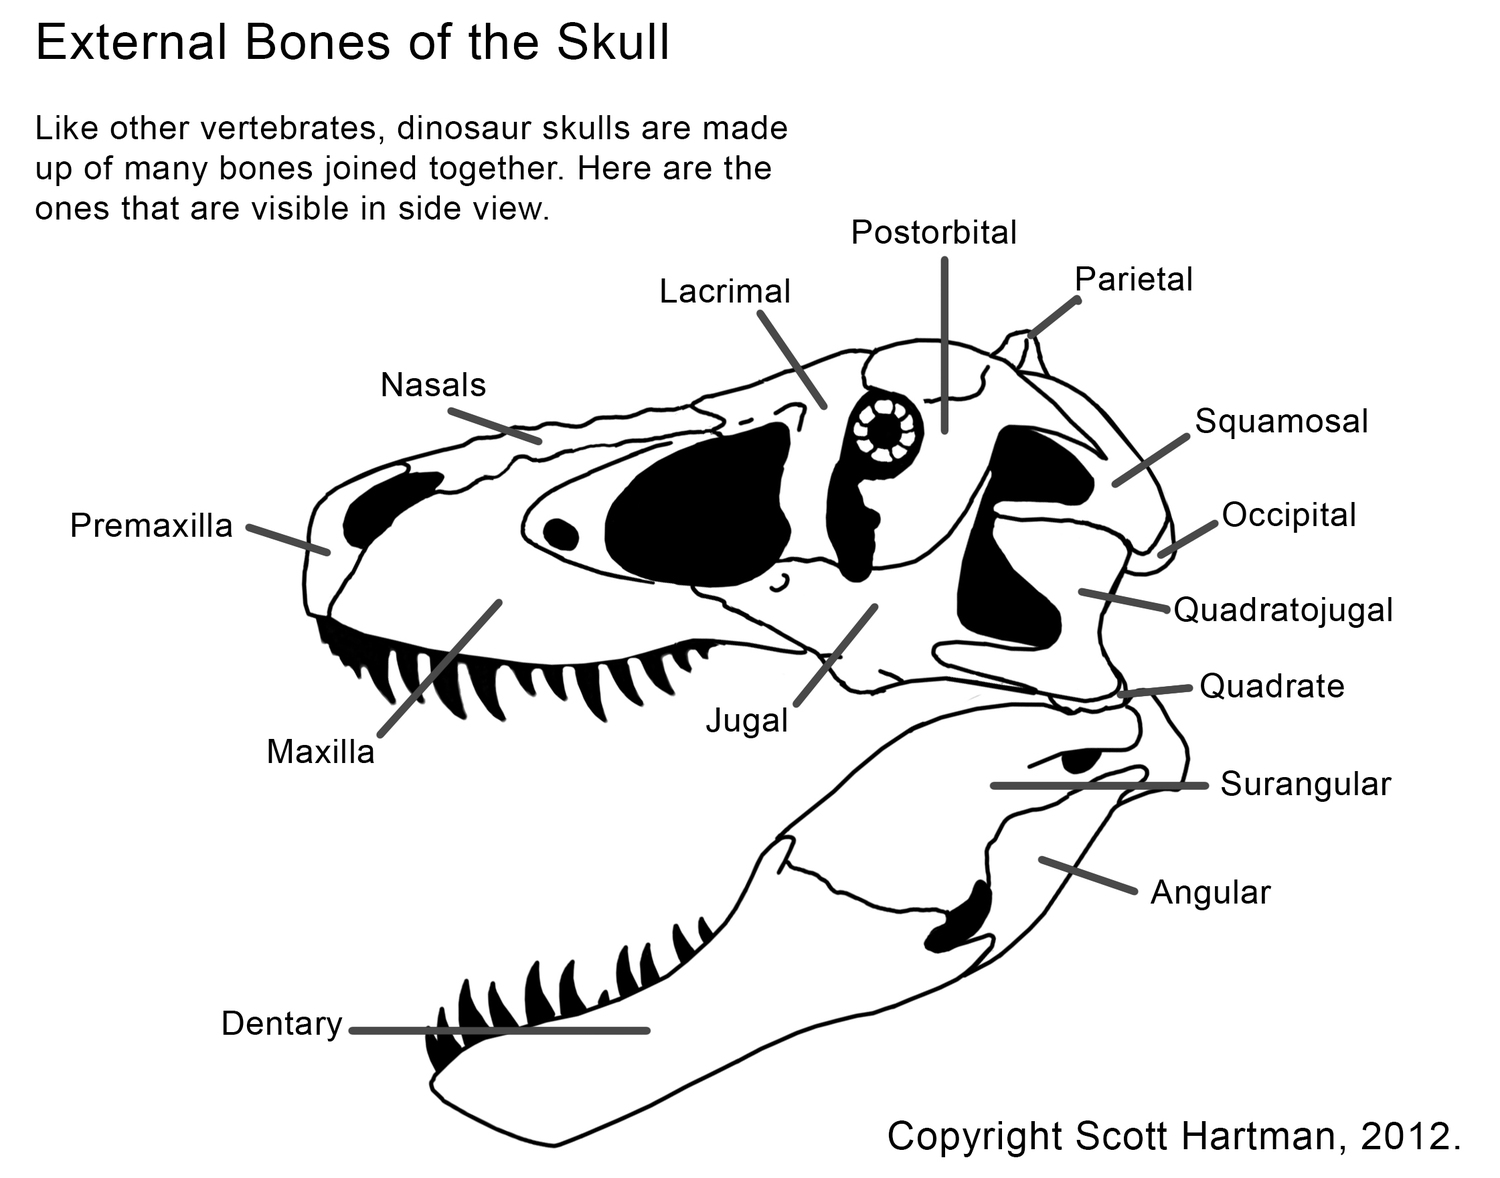 Dinosaur Anatomy 101 - General Fossil Discussion - The Fossil Forum